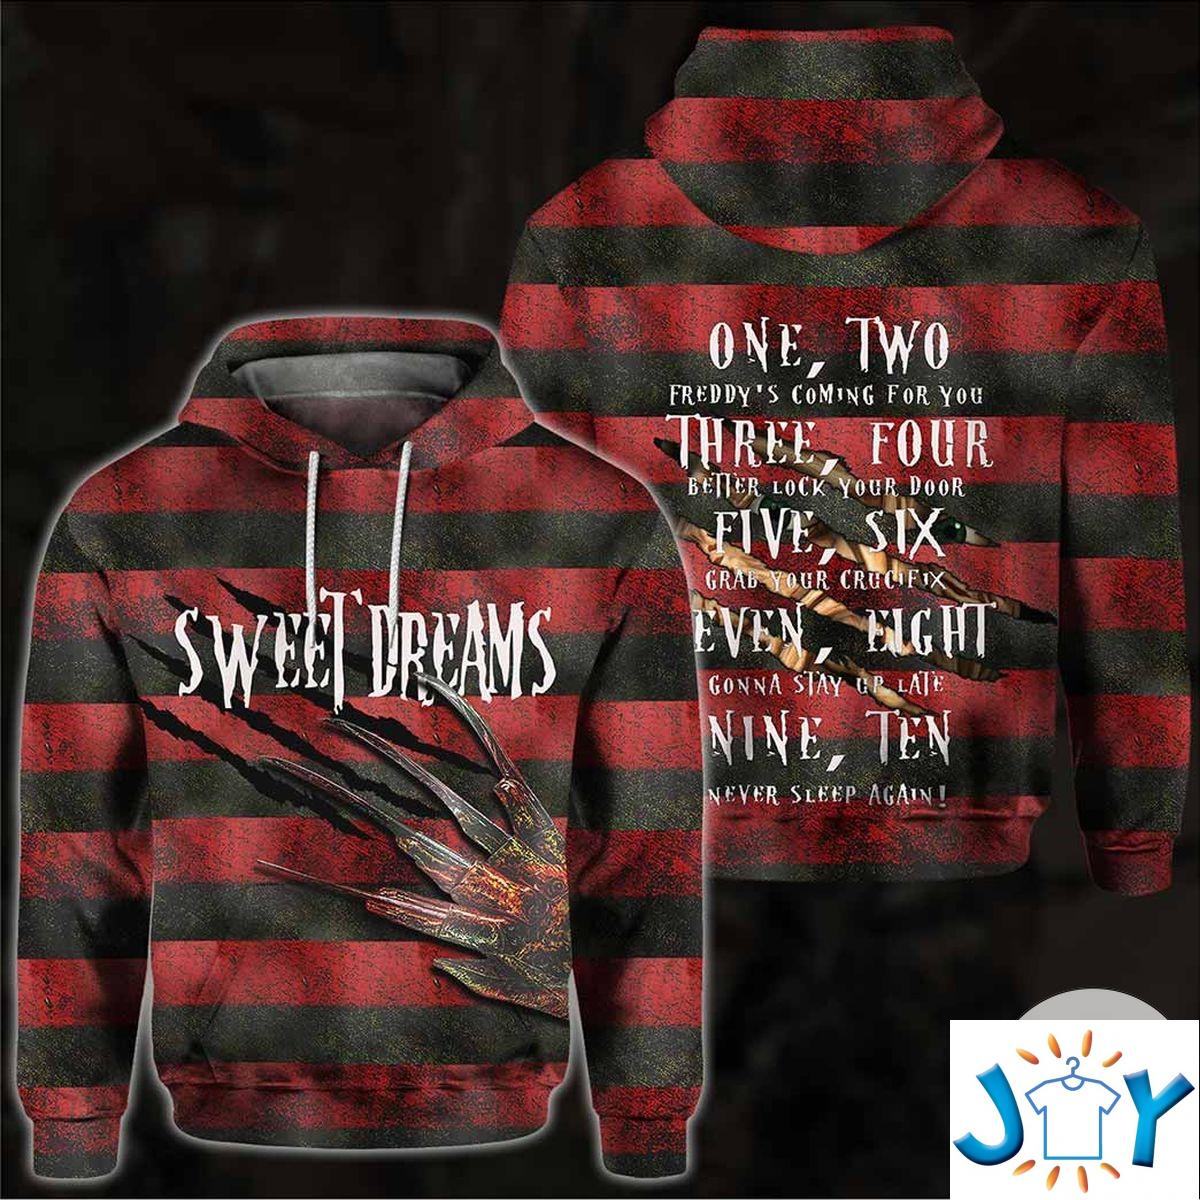 Sweet Dreams One Two Freddy'S Coming For You 3D Hoodie